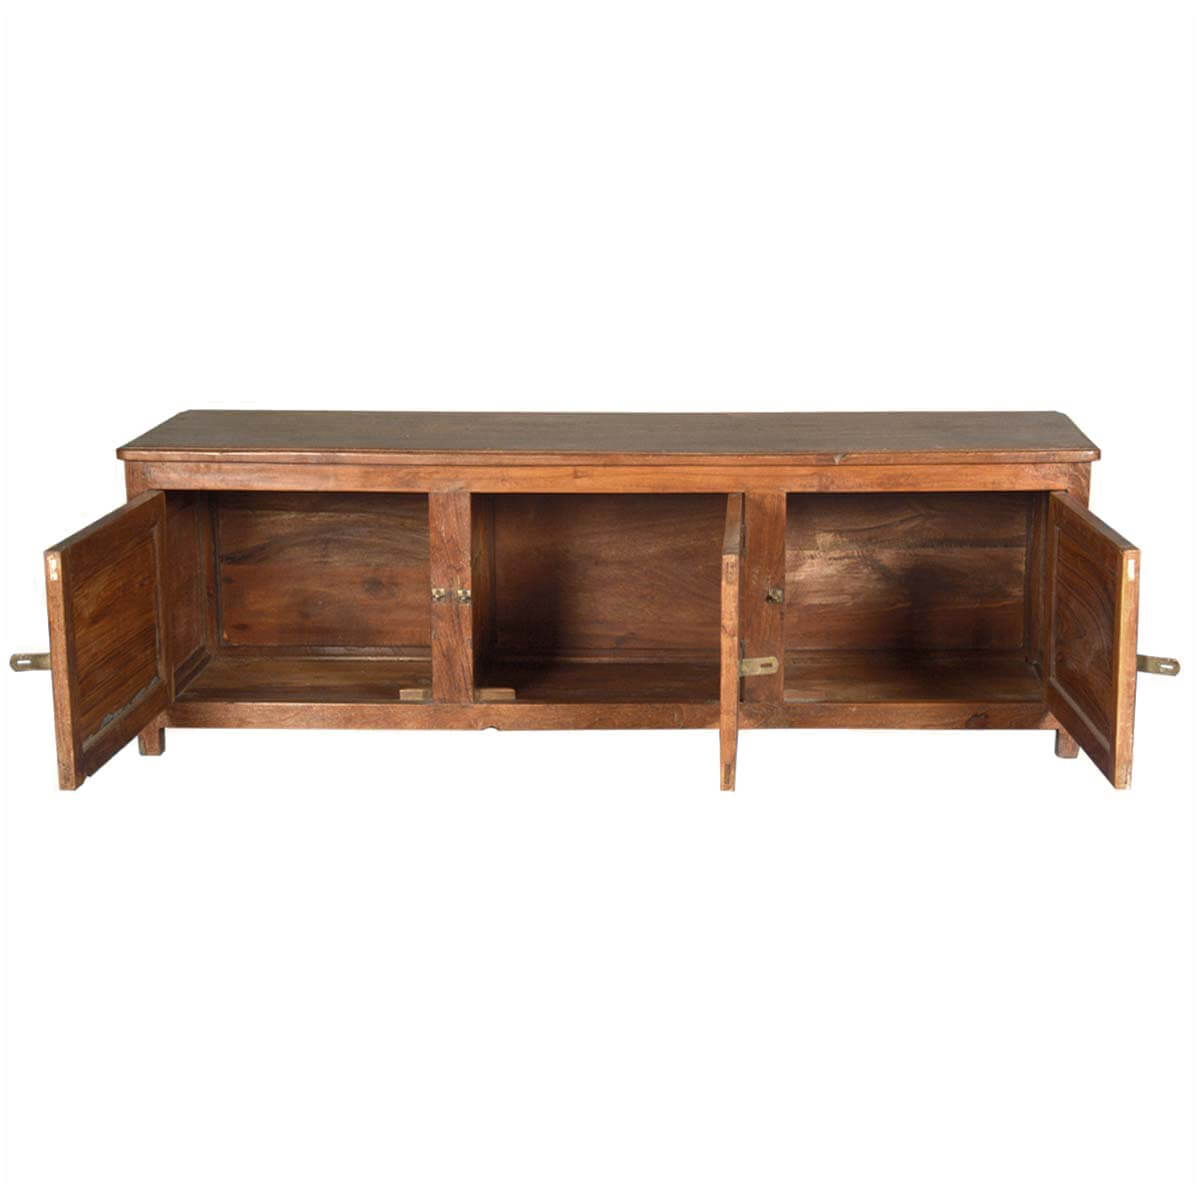 Rustic teak wood media console tv stand with doors